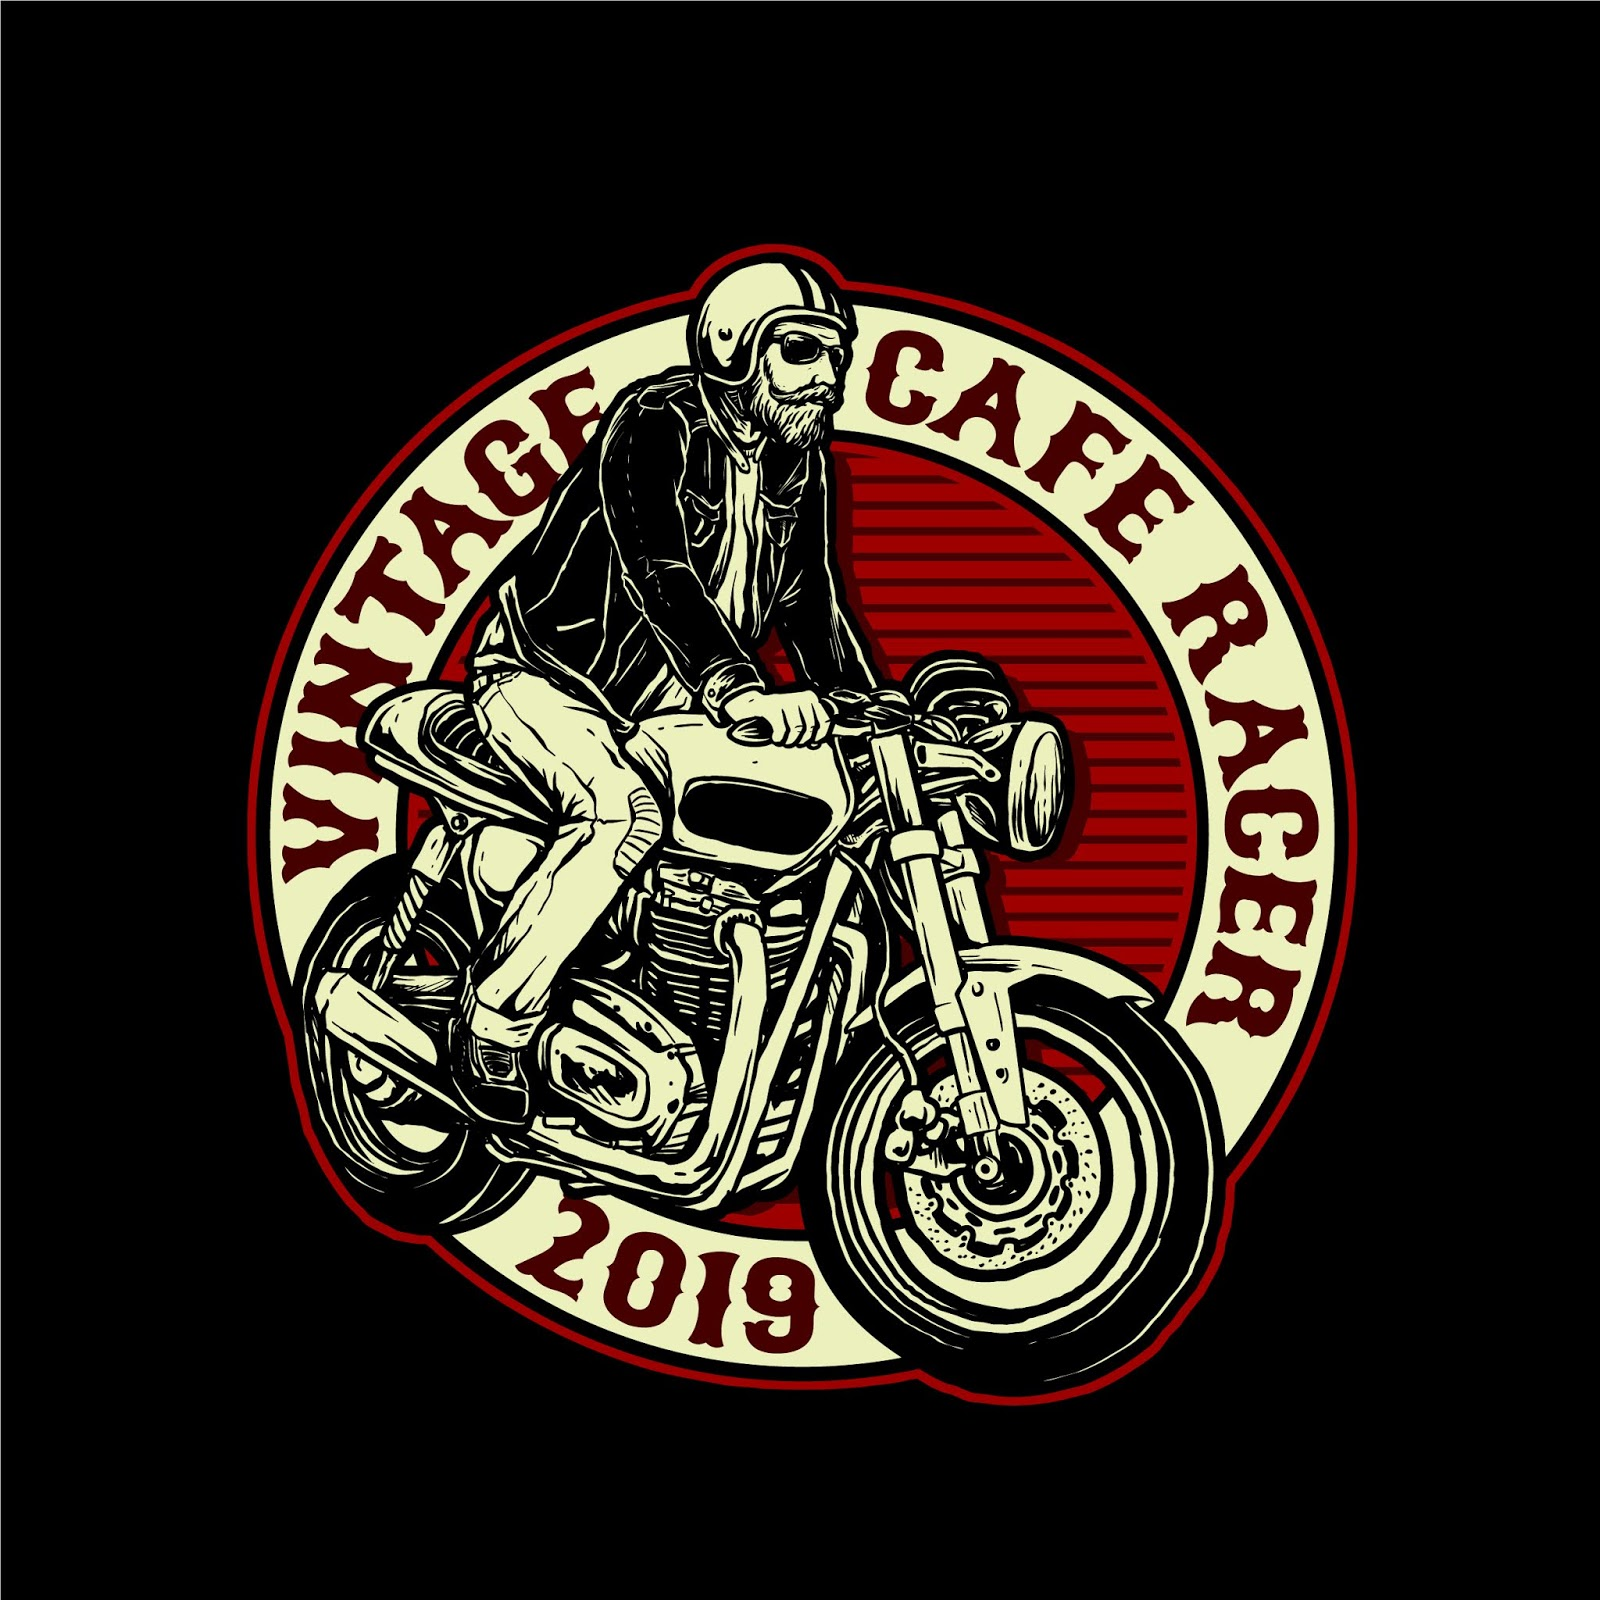 Man Riding Cafe Racer Motorcycle Vector Badge Free Download Vector CDR, AI, EPS and PNG Formats